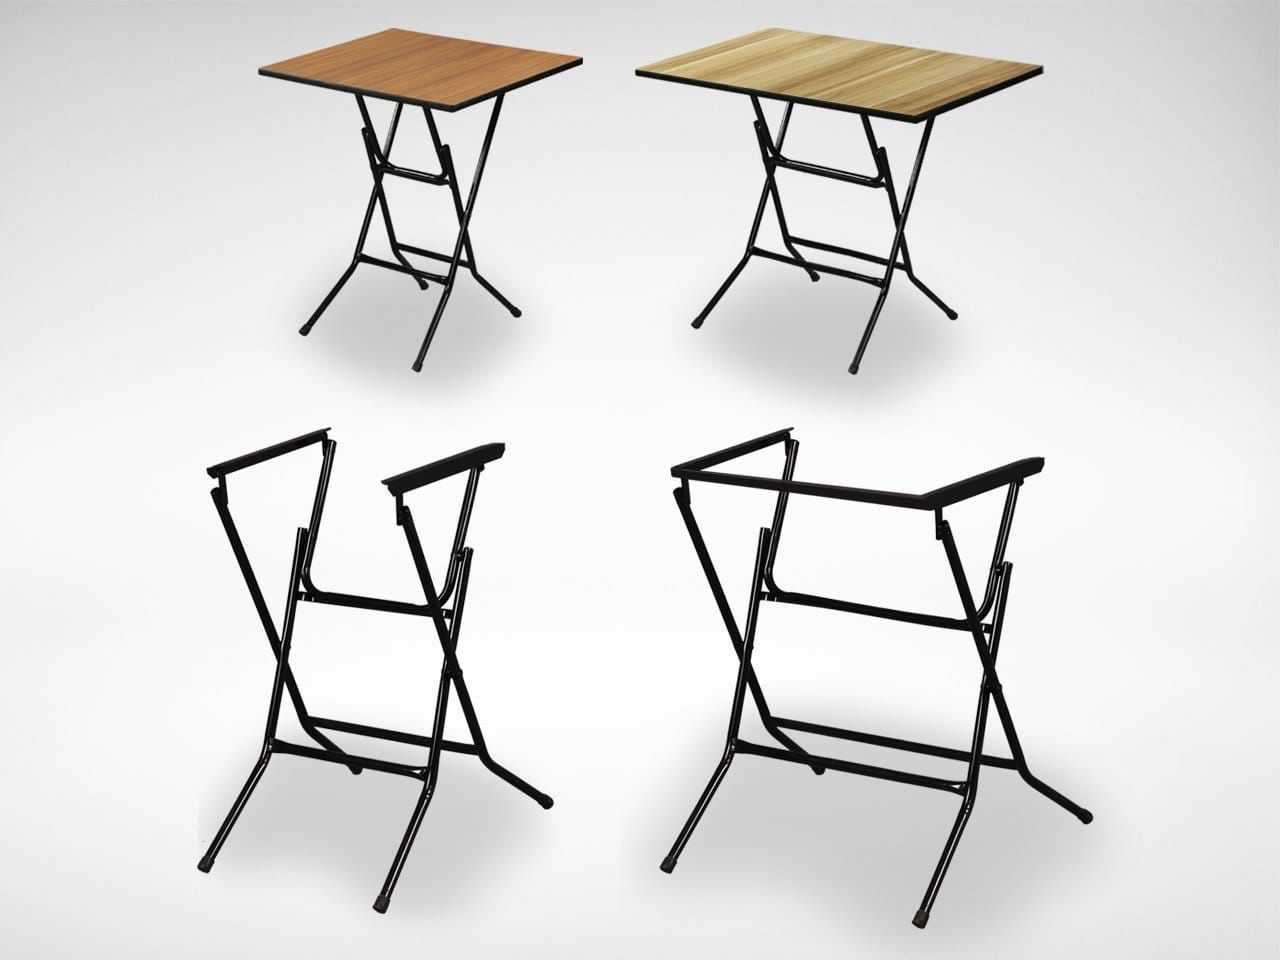 Mars Folding Table Base Comfort Design The Chair